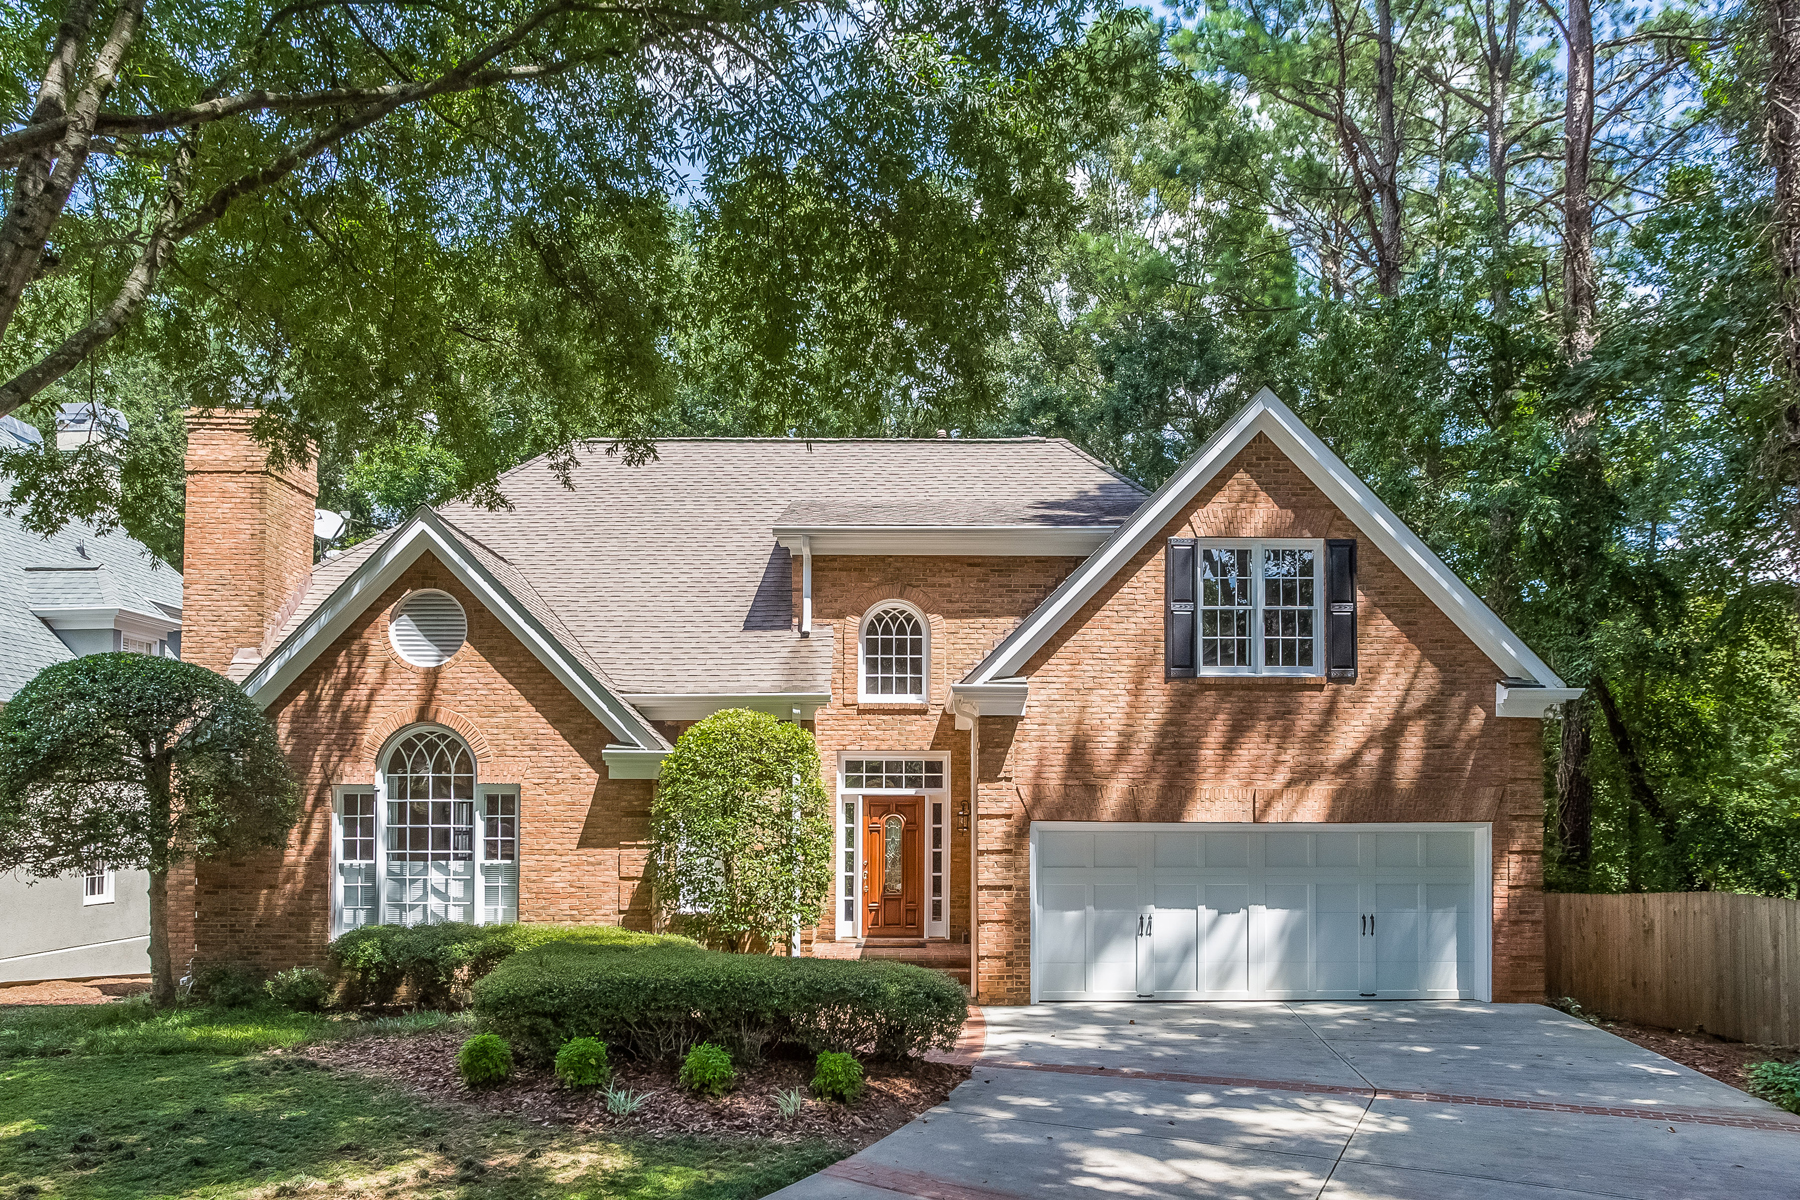 Single Family Home for Sale at Outstanding Sandy Springs Traditional 255 Woodchase Close NE Sandy Springs, Georgia 30319 United States